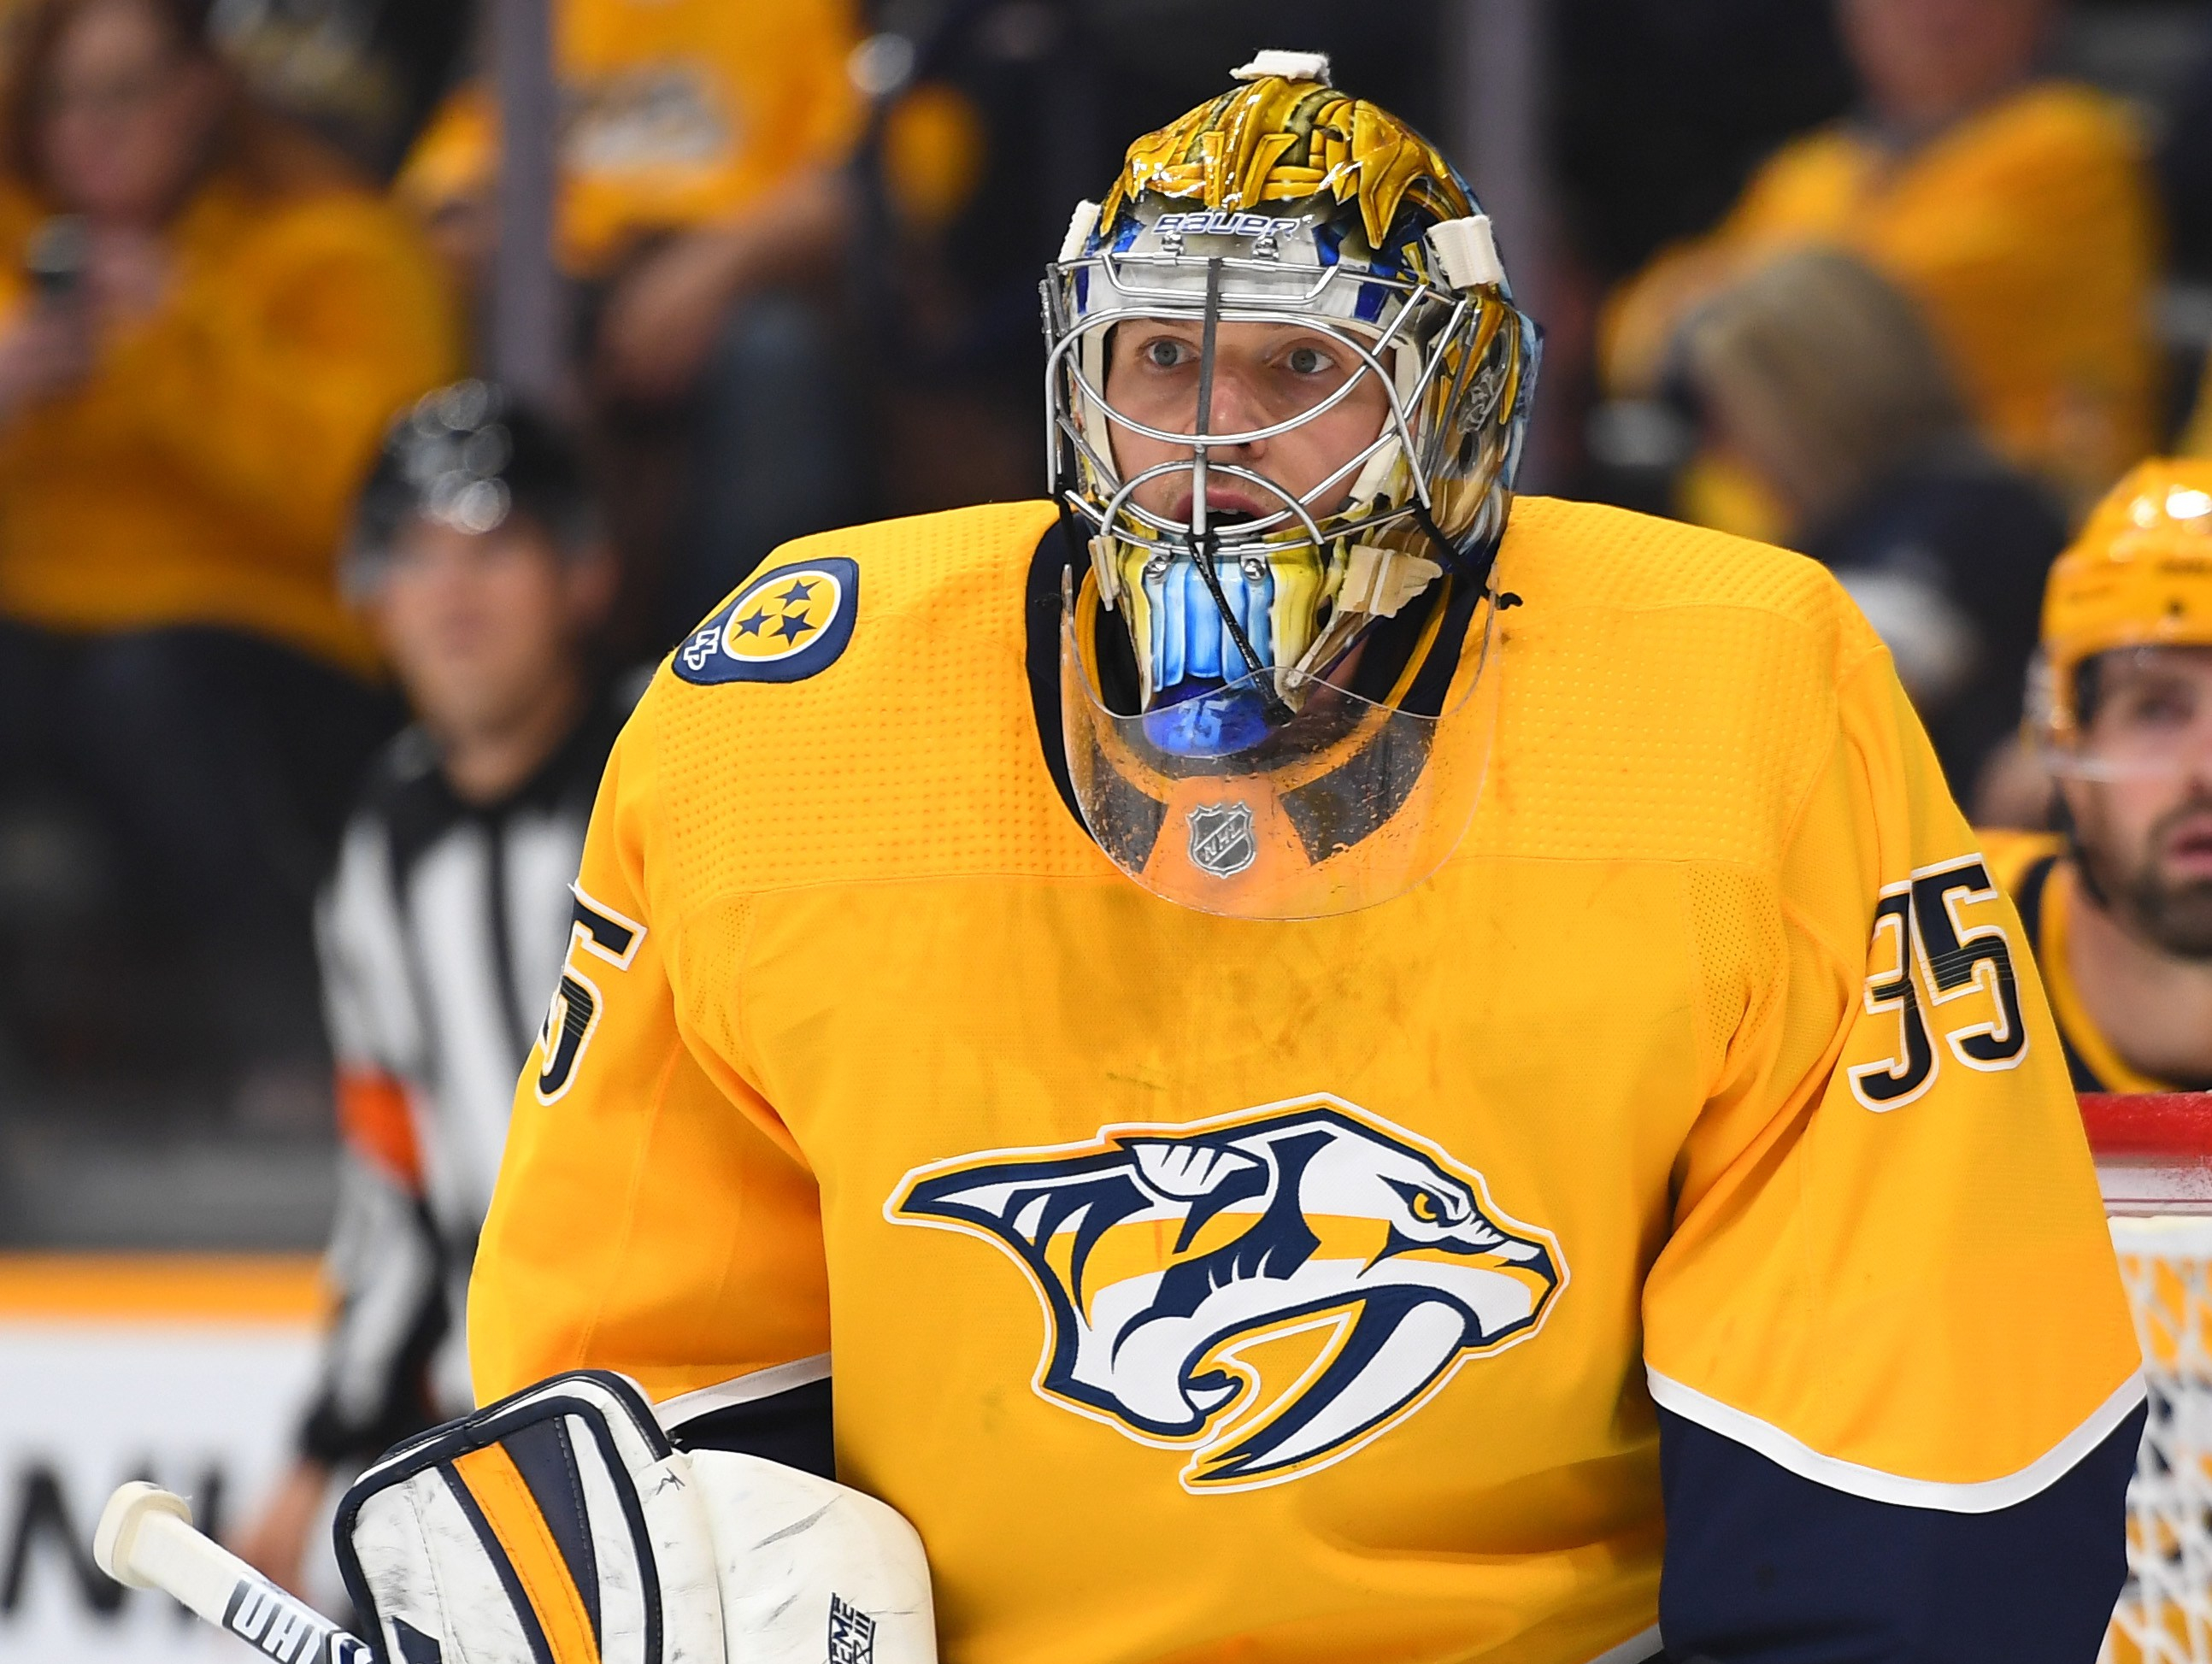 Pekka Rinne records his 60th career NHL shutout